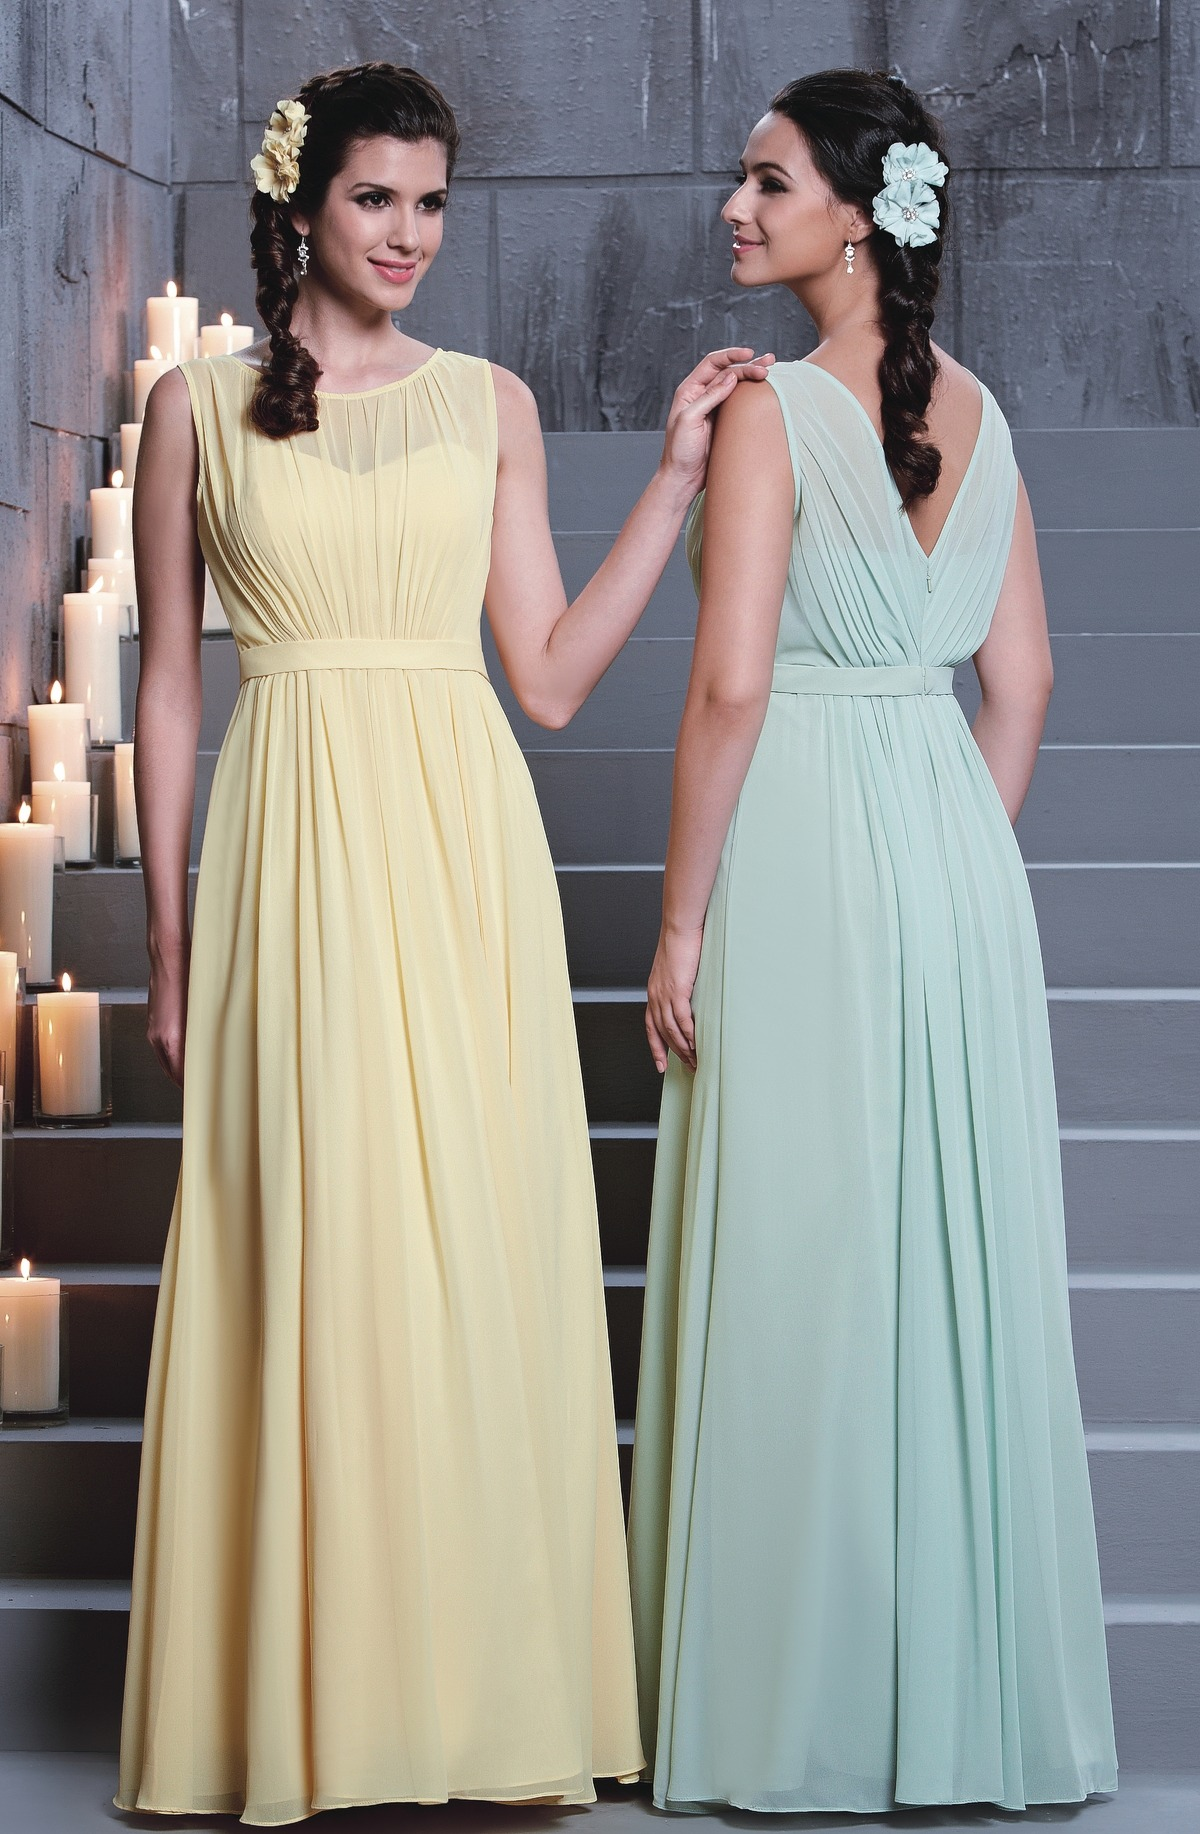 Dab11455 dzage bridesmaid collection veromia move your cursor over the images to zoom in on the detail if the zoom does not work immediately press refresh ombrellifo Choice Image